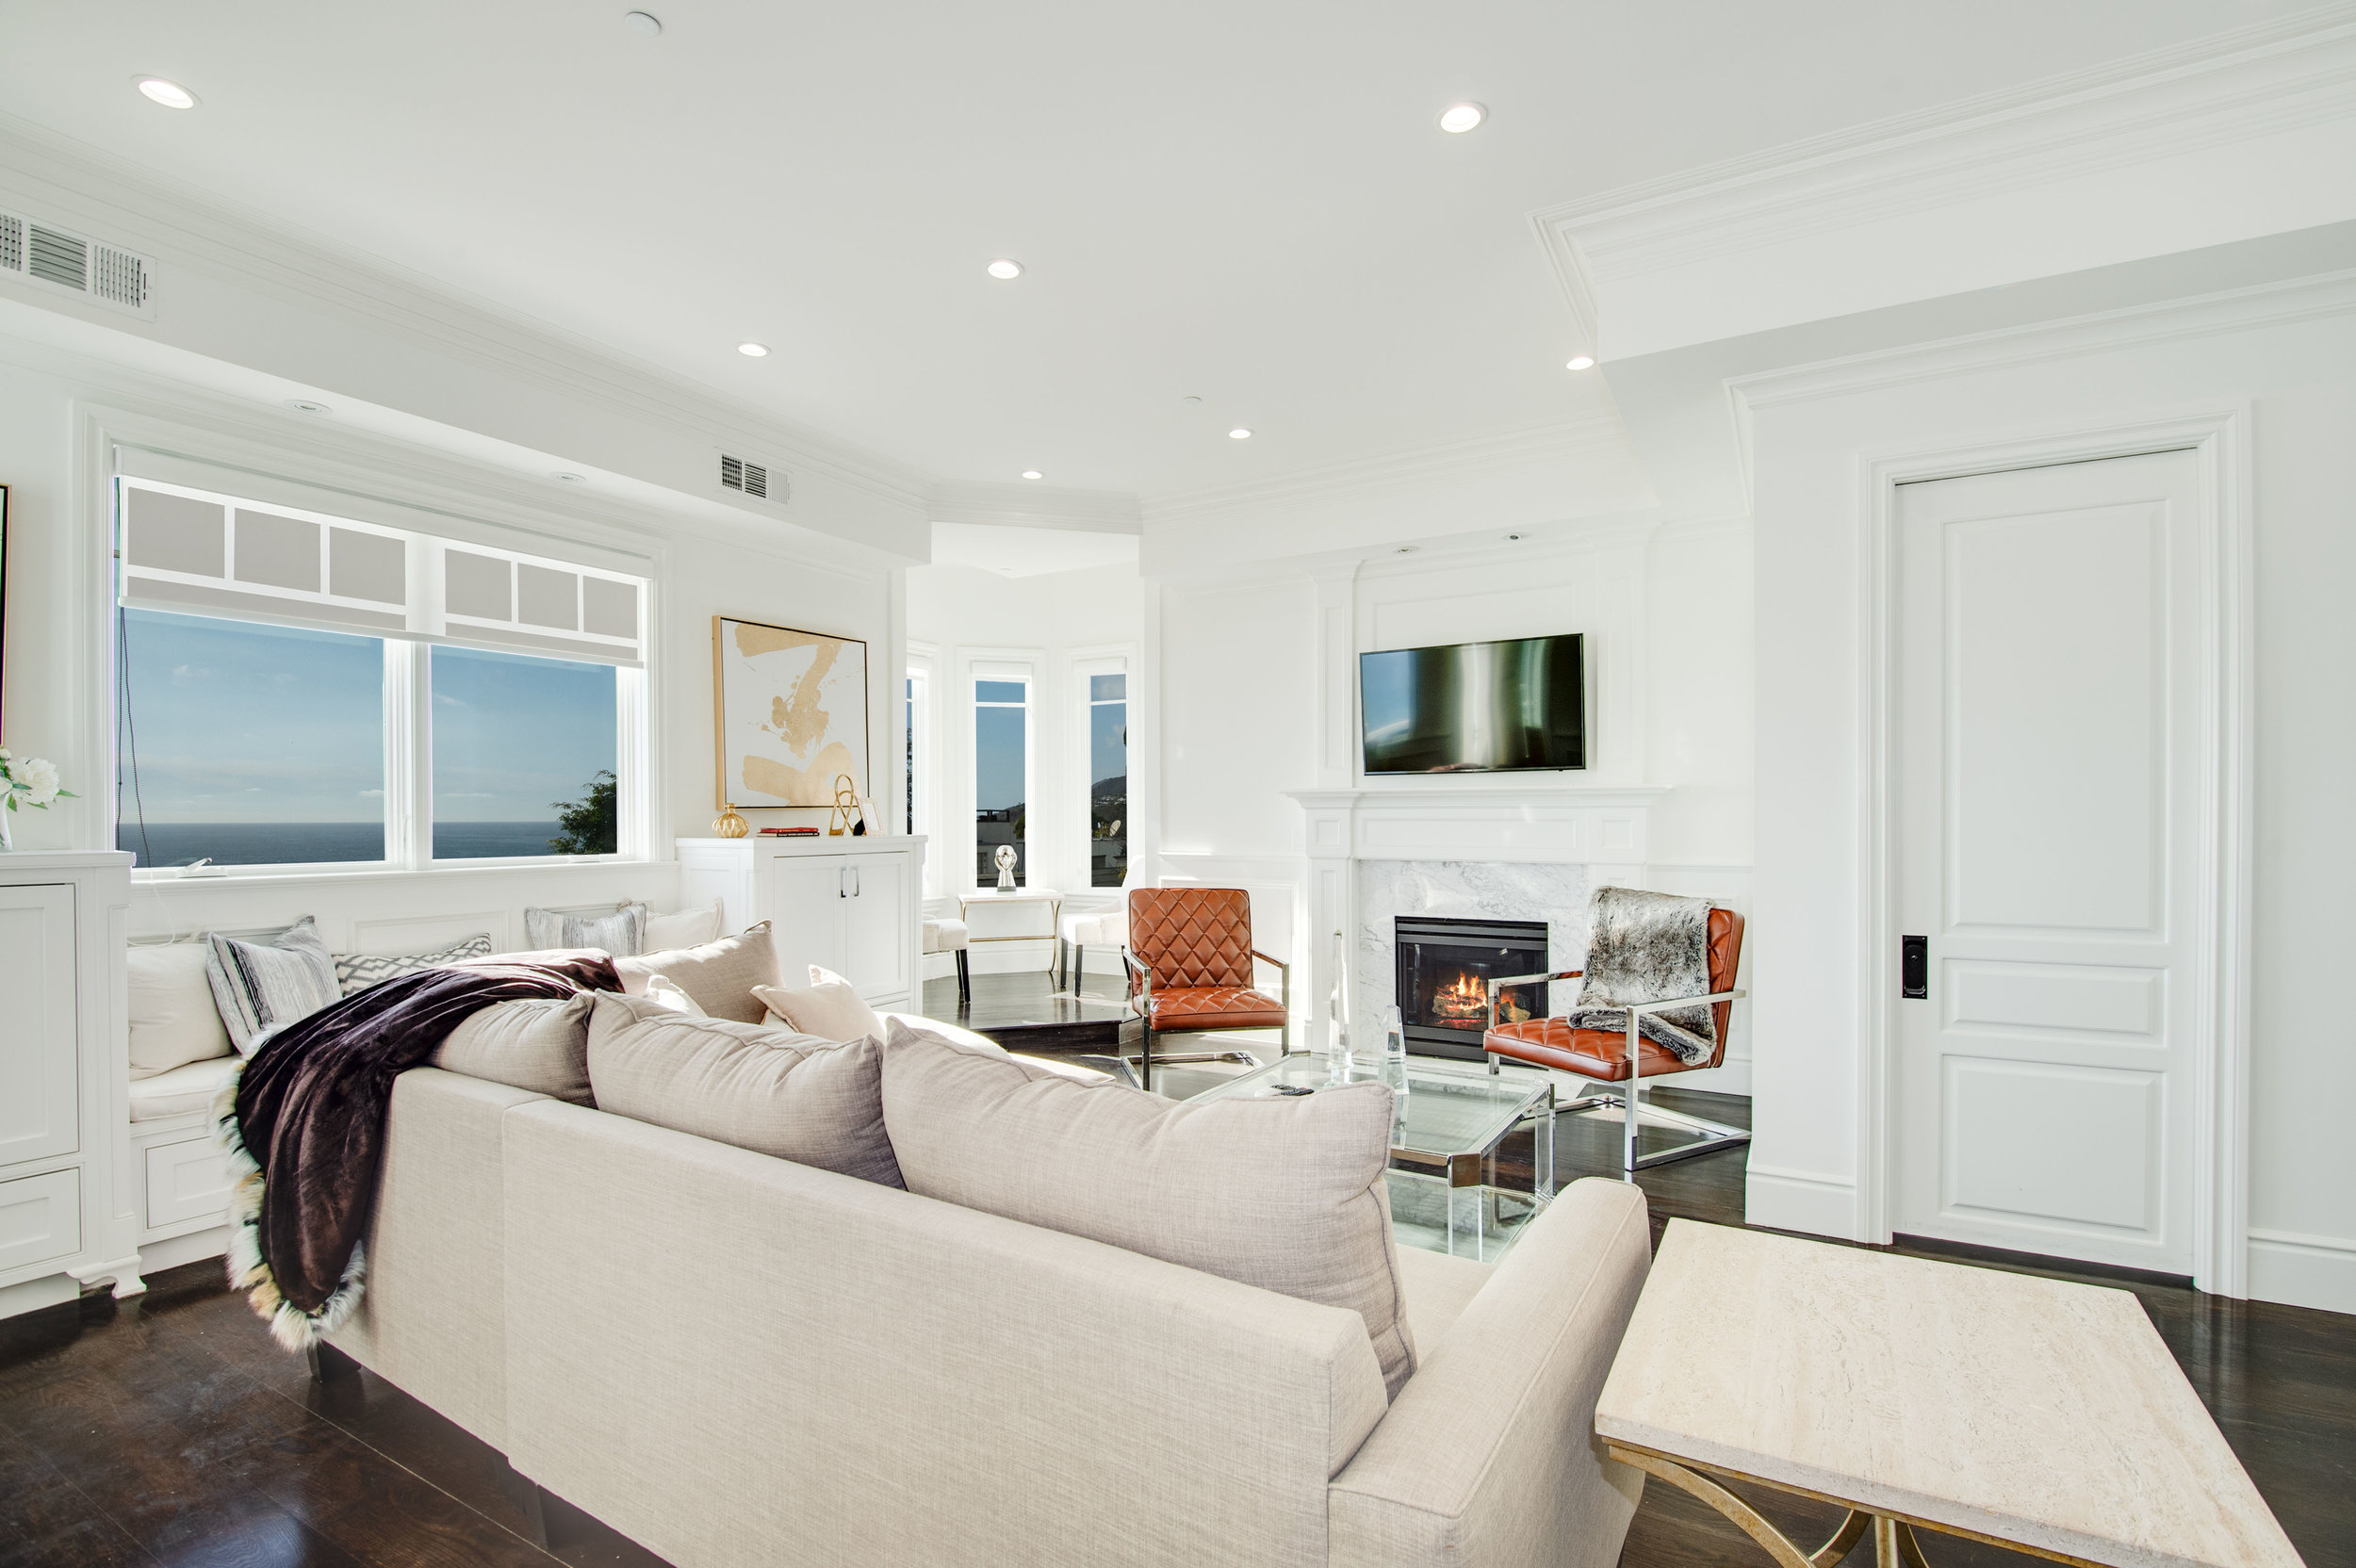 002 Living Room 17819 Castellammare Drive Pacific Palisades For Sale Lease The Malibu Life Team Compass Luxury Real Estate.jpg